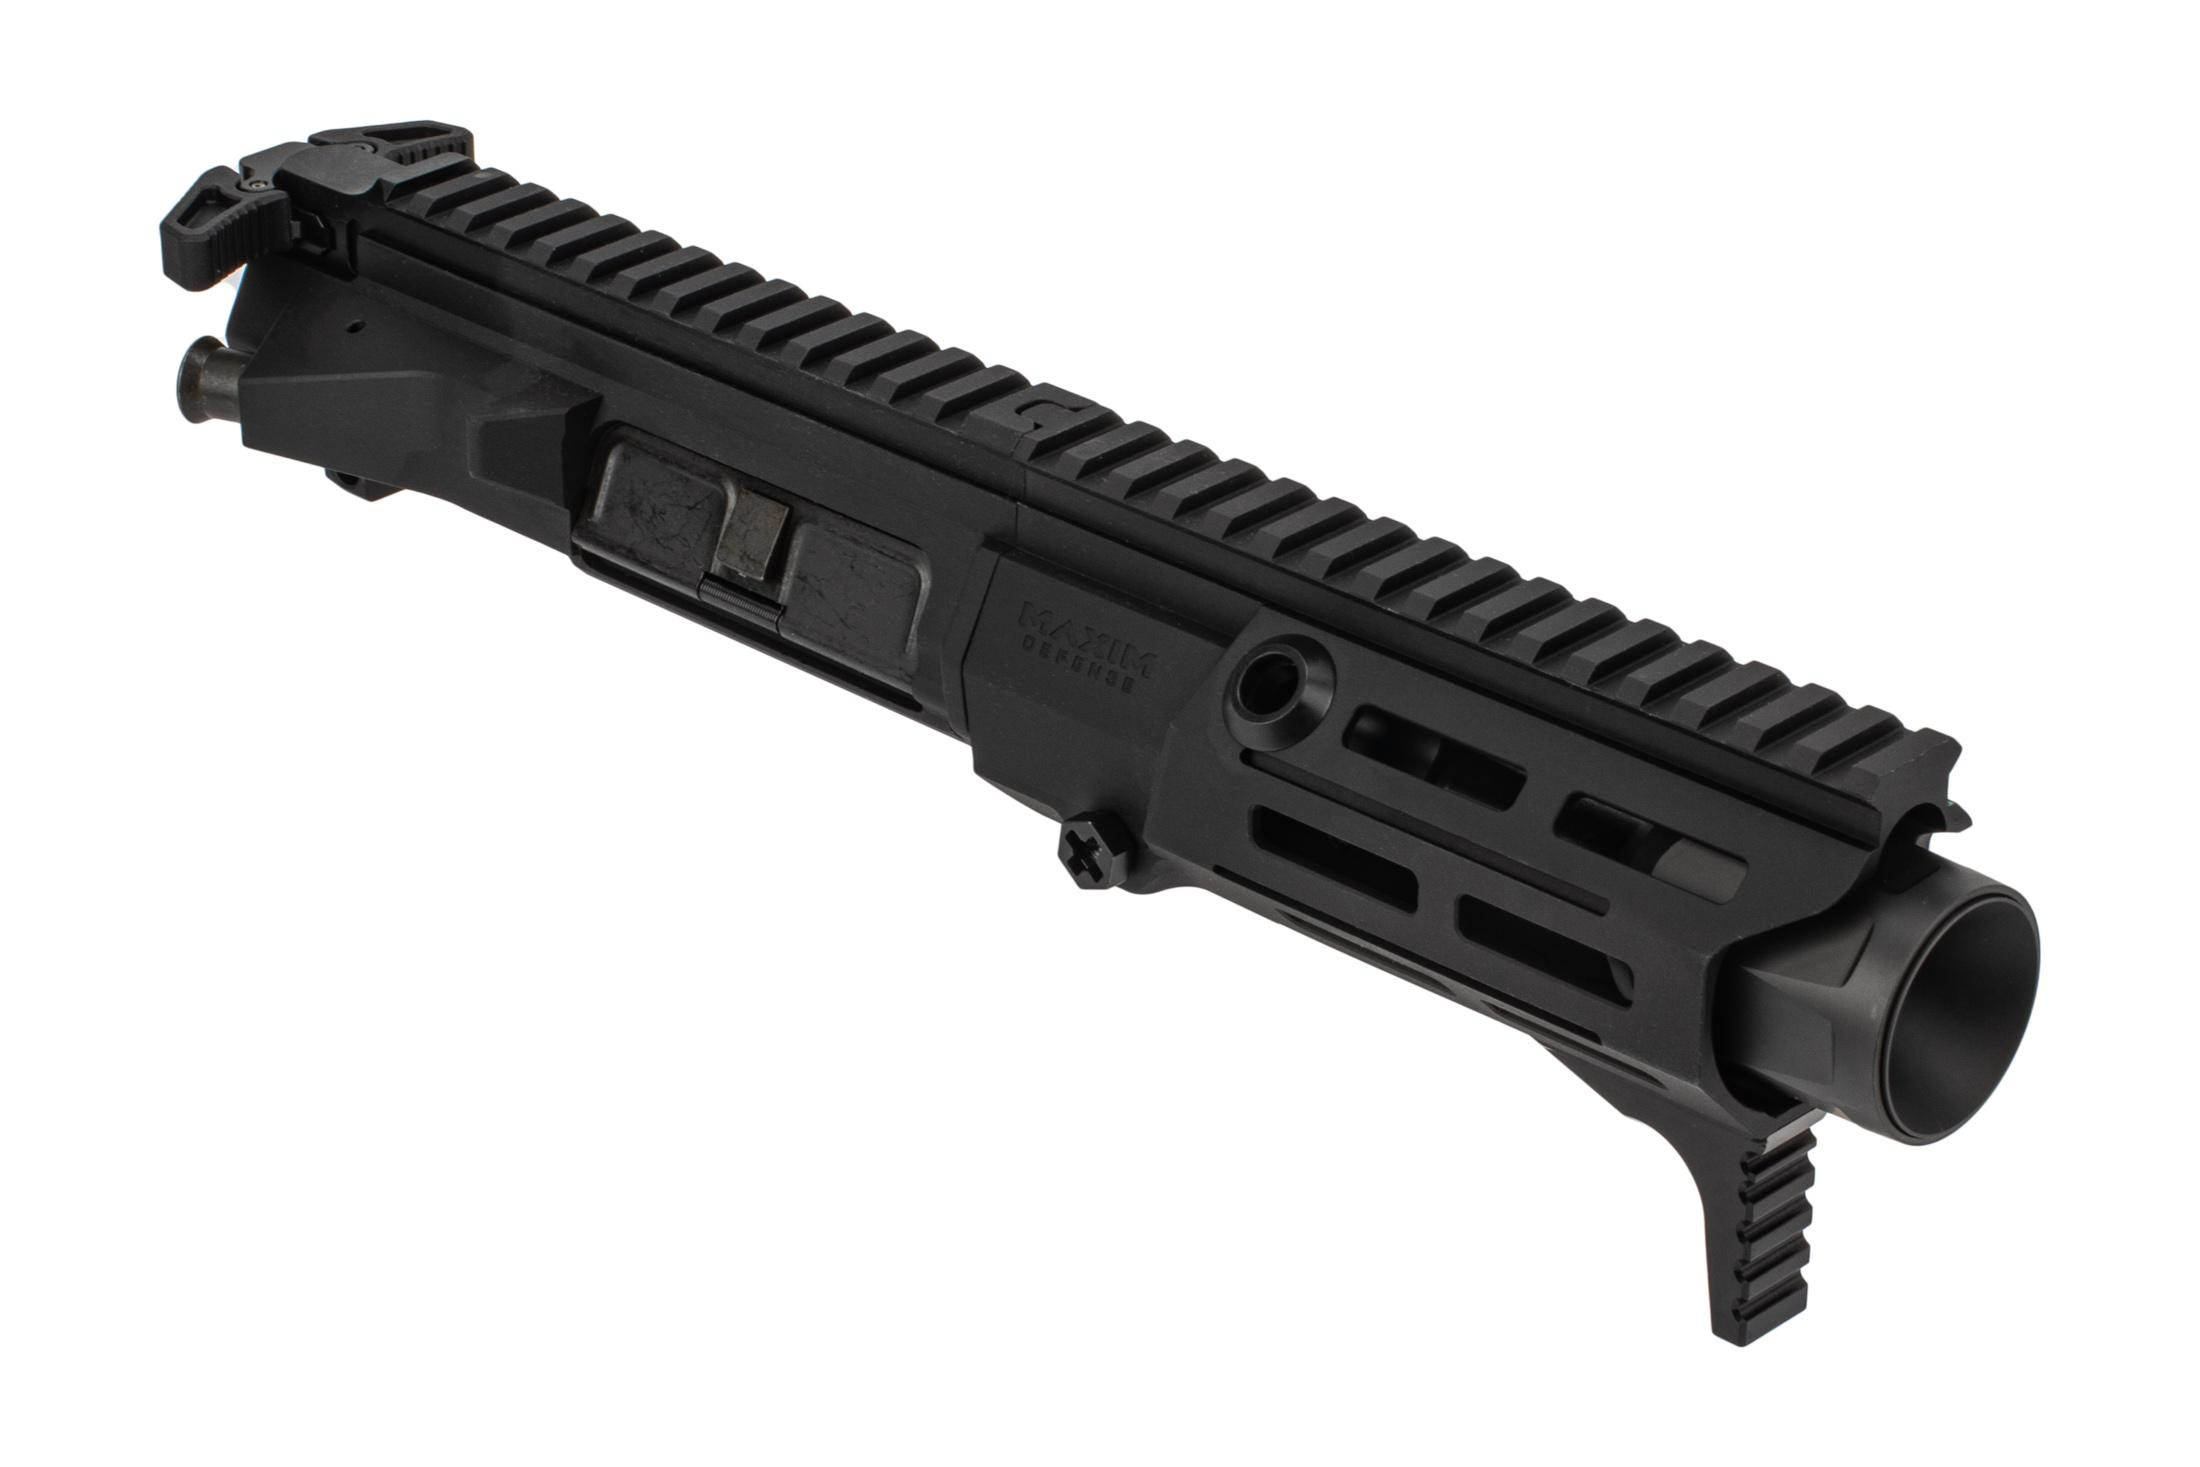 Maxim Defense PDX 5.56 Complete Upper Receiver features a black anodized finish